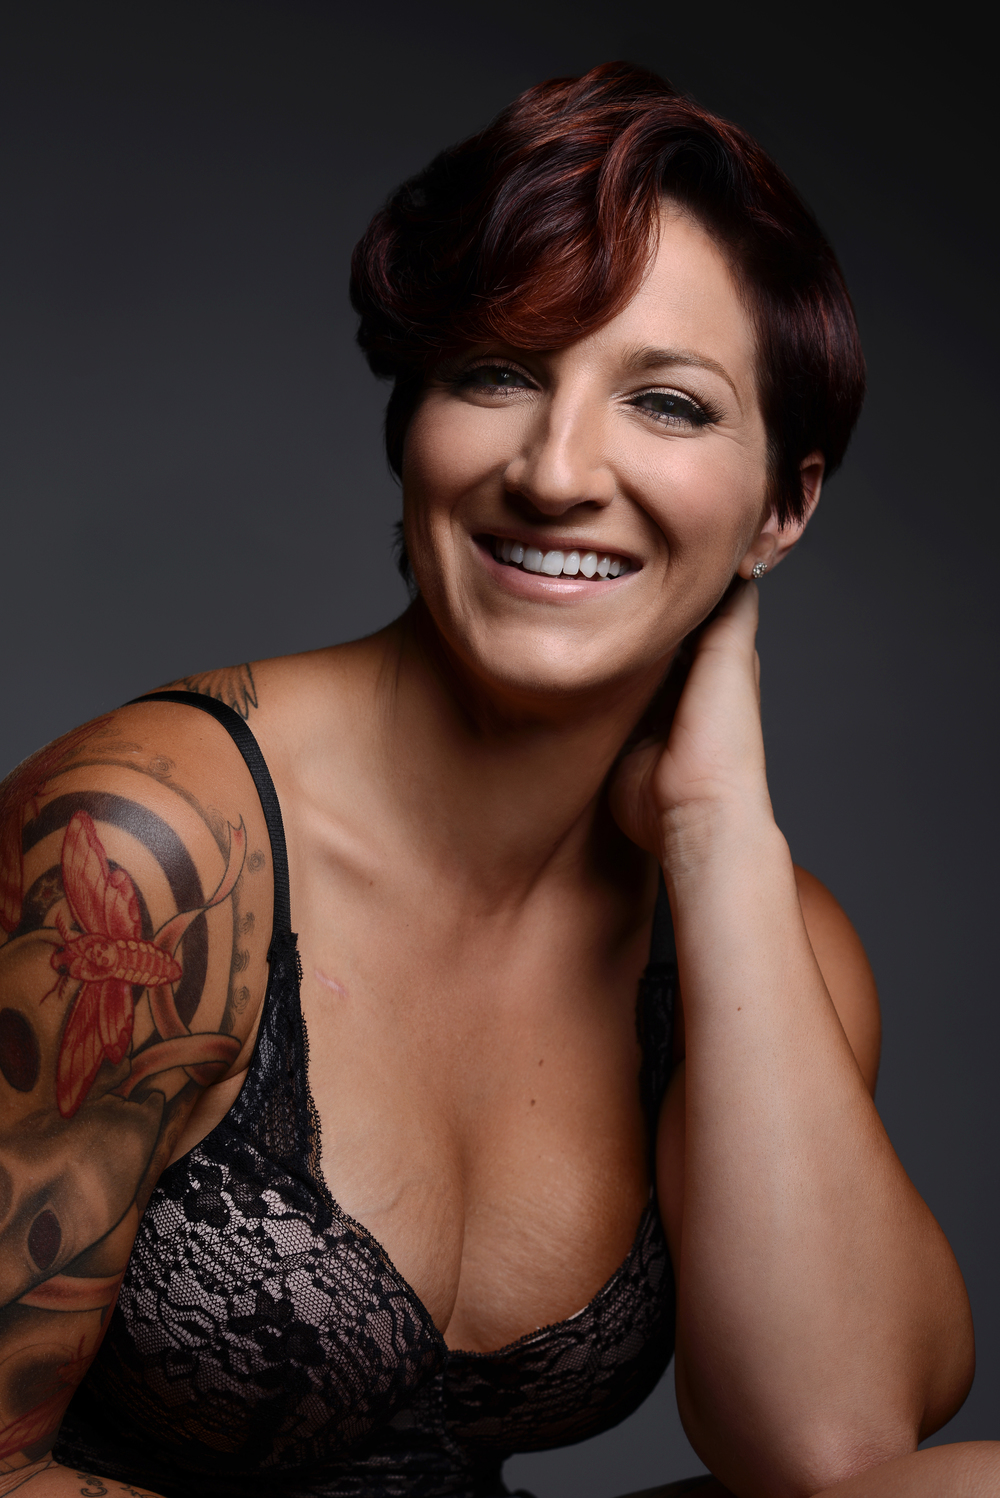 Studio Portrait Session - Army vet and breast cancer survivor Mylee Yc